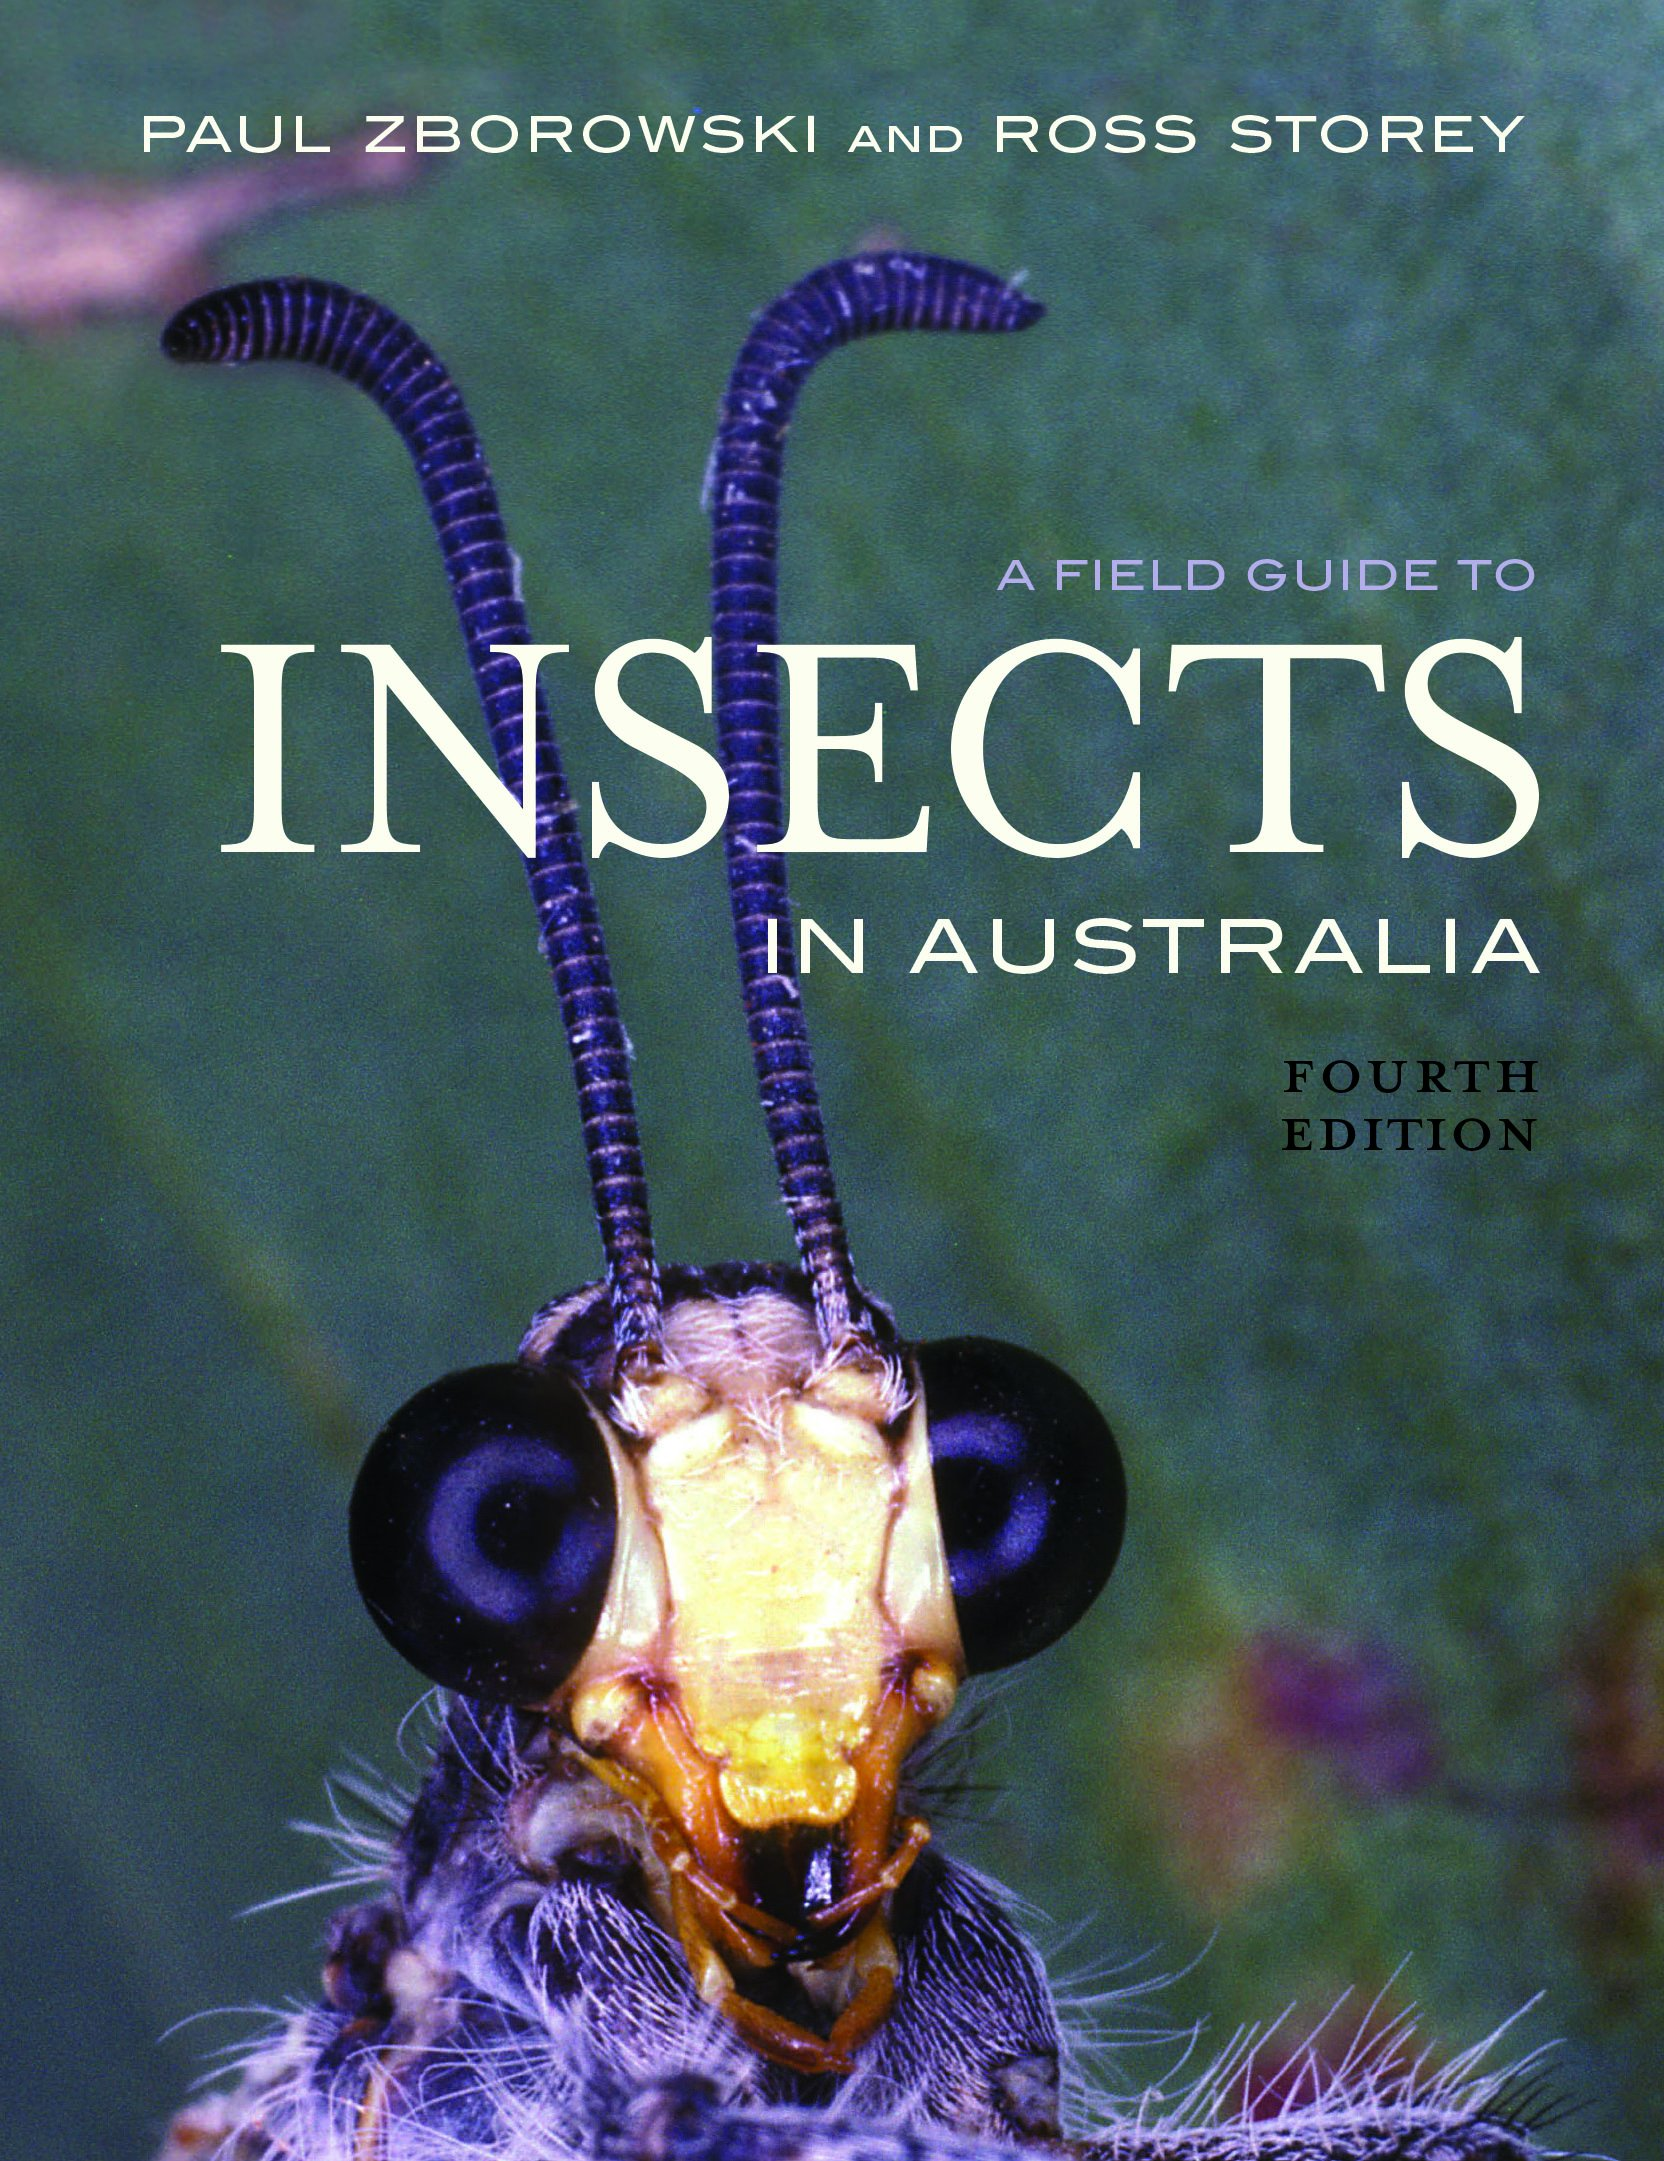 A Field Guide To Insects In Australia, by Paul Zborowski and Ross Storey